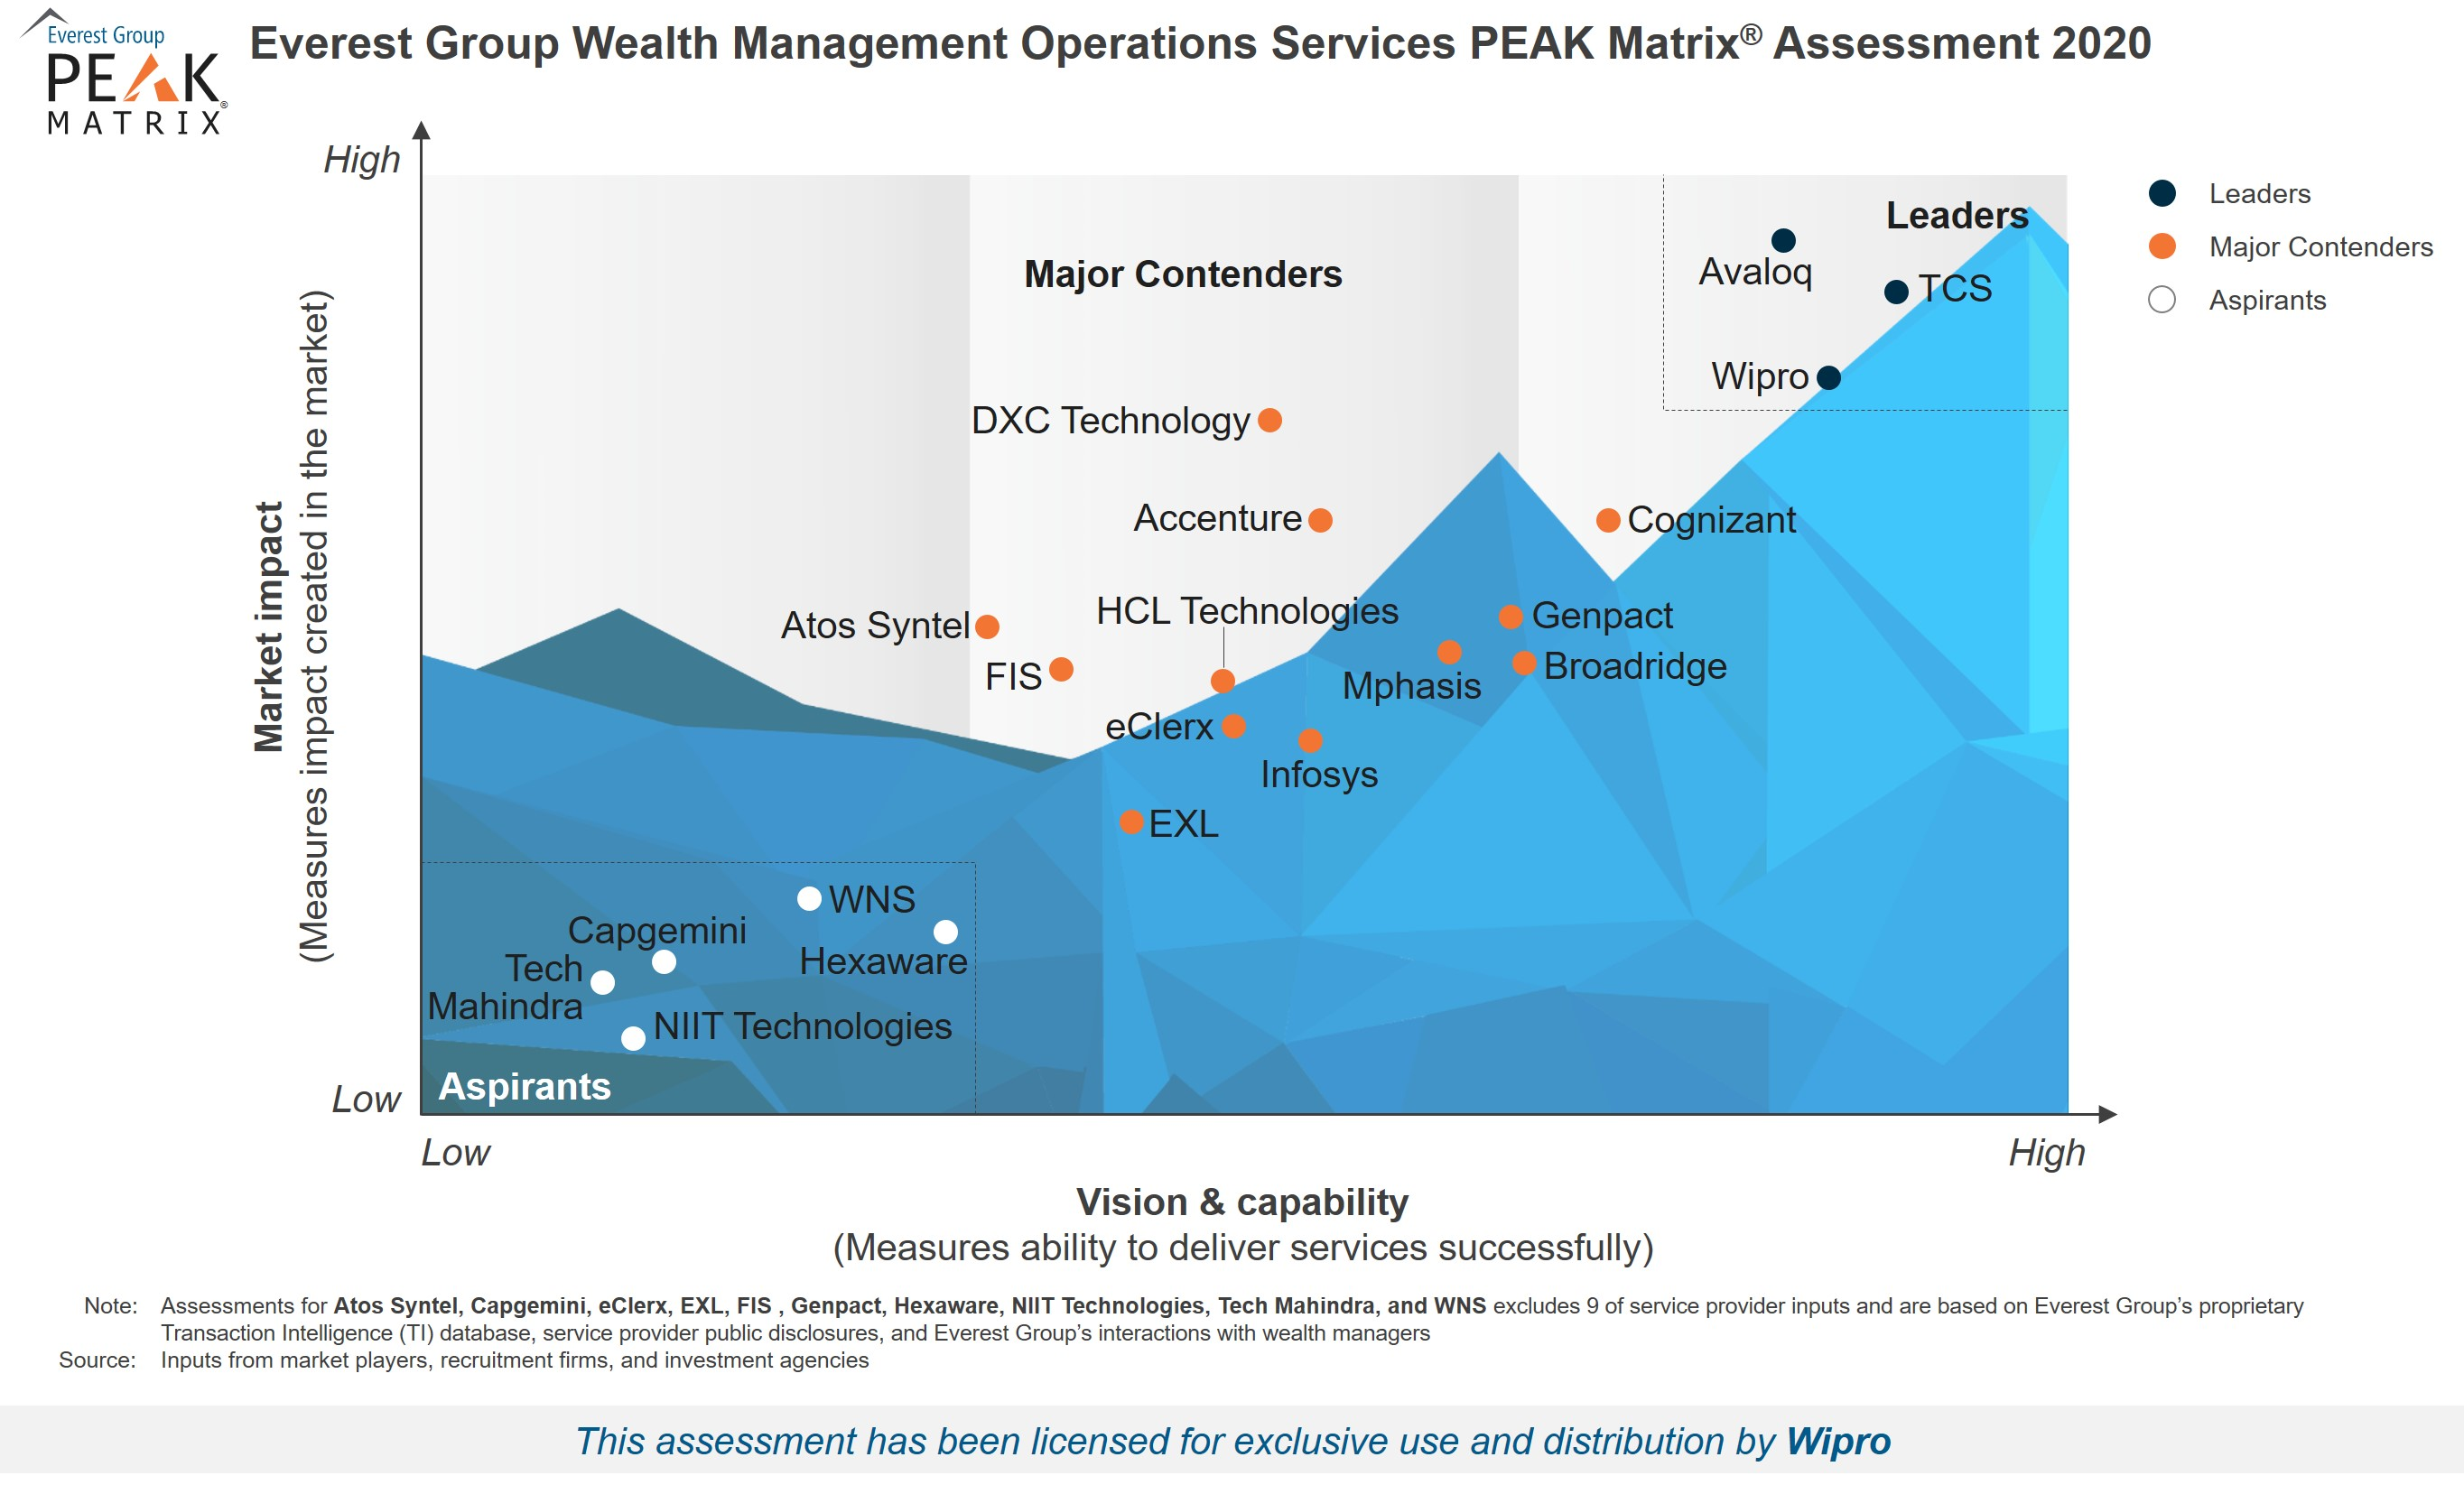 Wipro positioned as a Leader in Everest Group PEAK Matrix for Wealth Management Operations Service Providers 2020